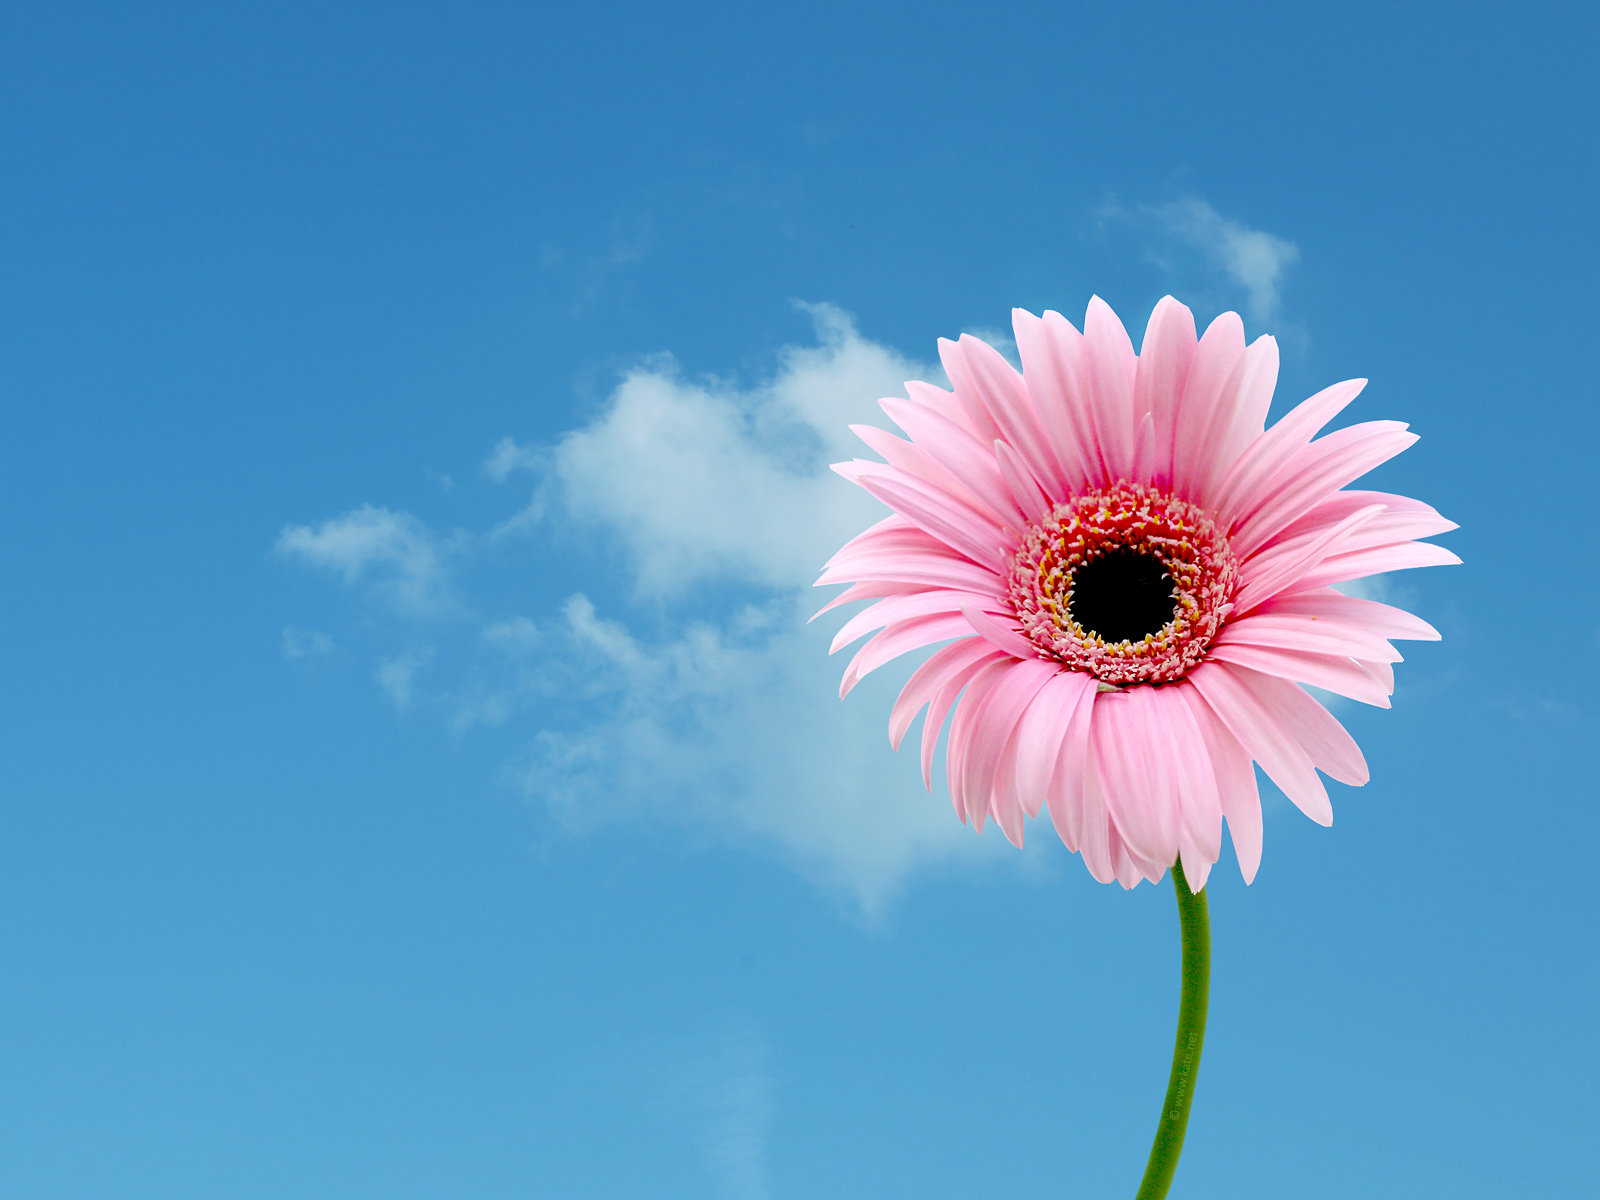 Free Flower Images Download Free Clip Art Free Clip Art on Clipart